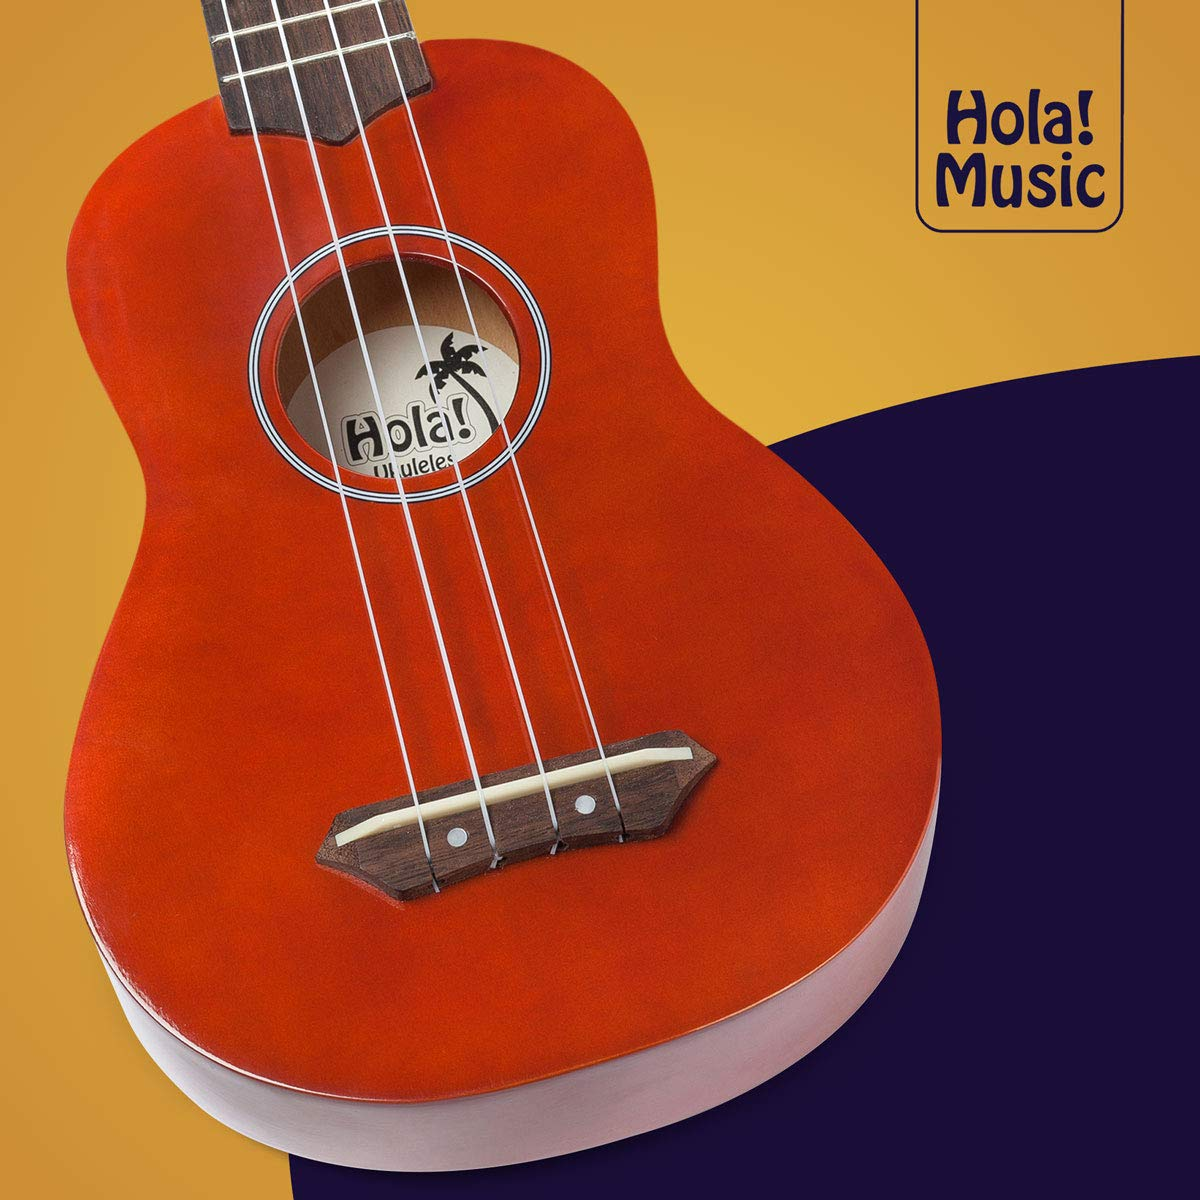 Hola! Music HM-21MG Soprano Ukulele Bundle with Canvas Tote Bag, Strap and Picks, Color Series - Mahogany by Hola! Music (Image #5)